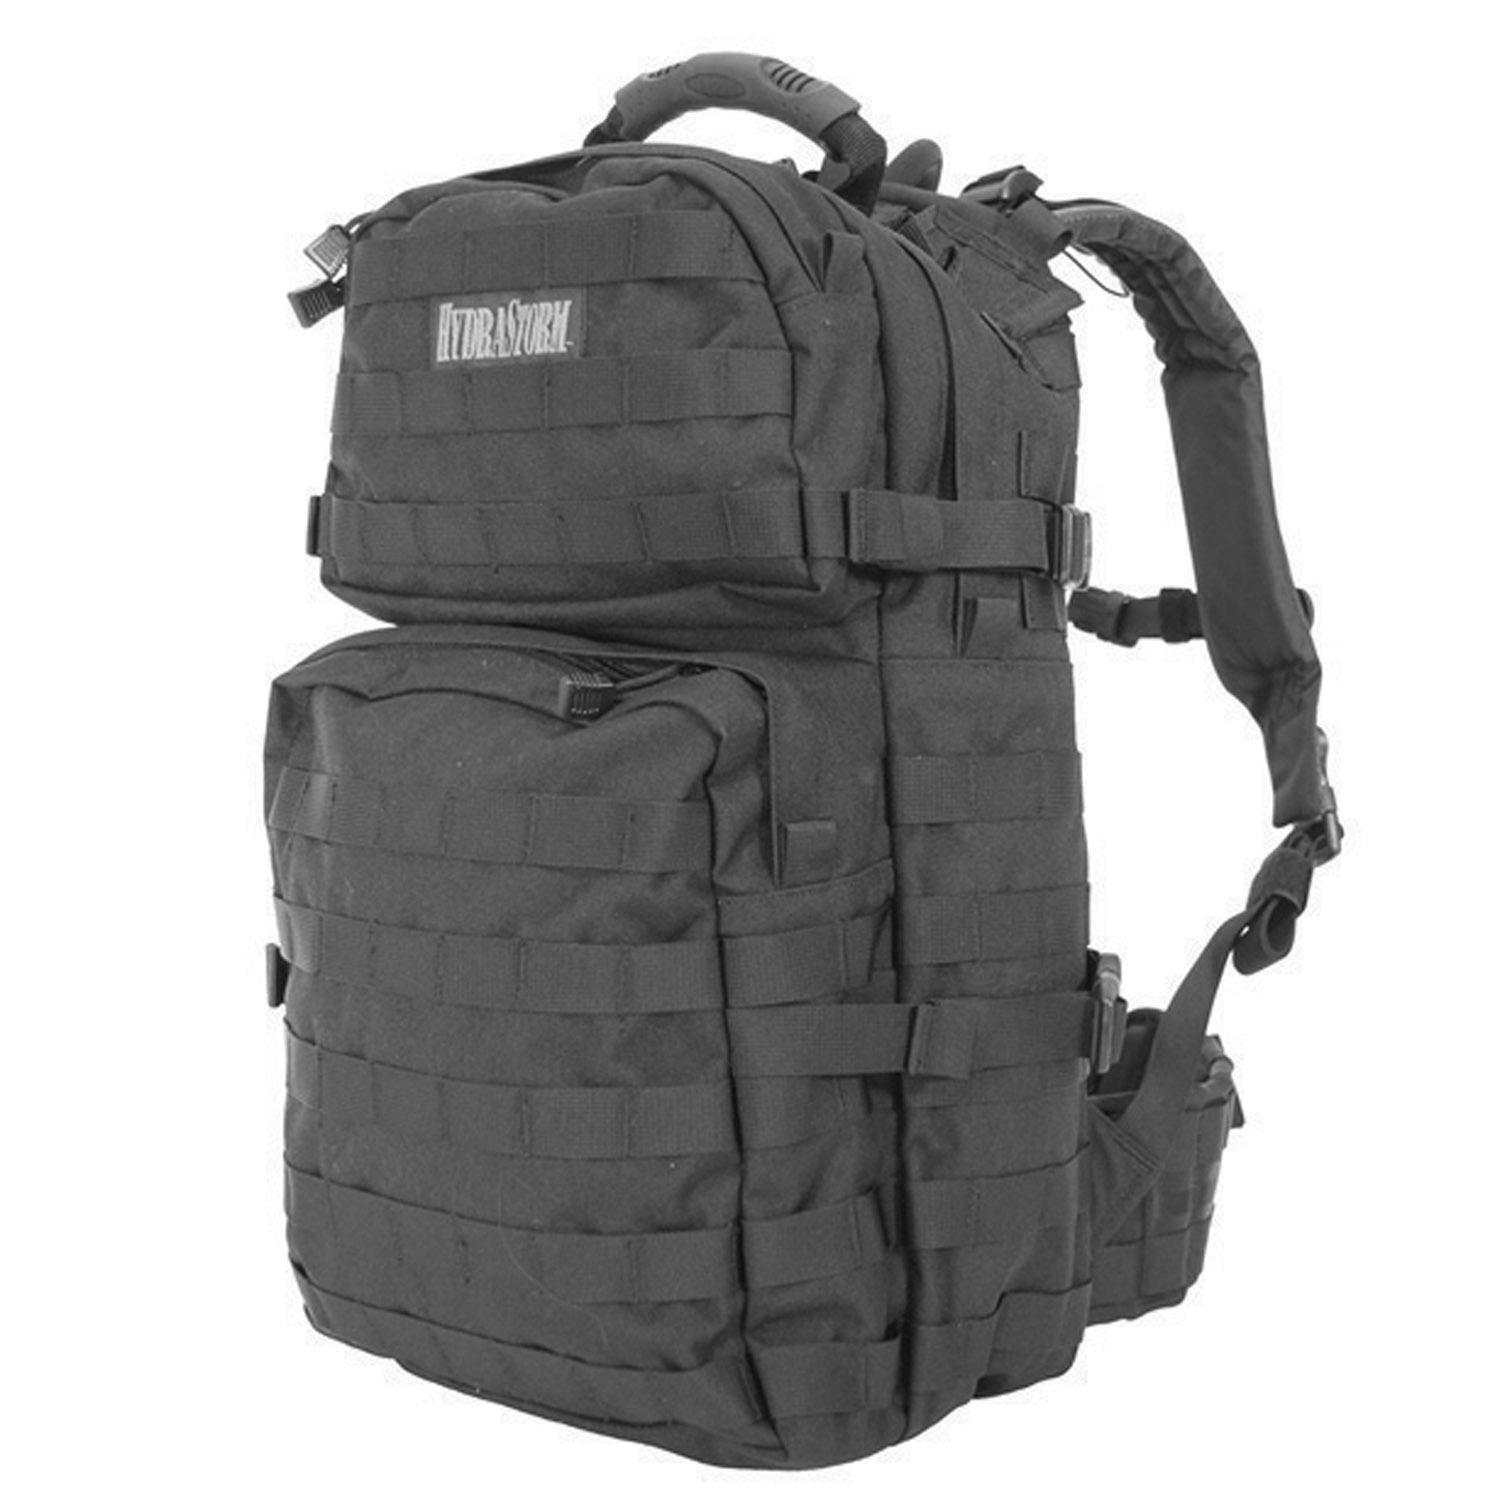 BLACKHAWK! S.T.R.I.K.E. Cyclone Hydration Pack